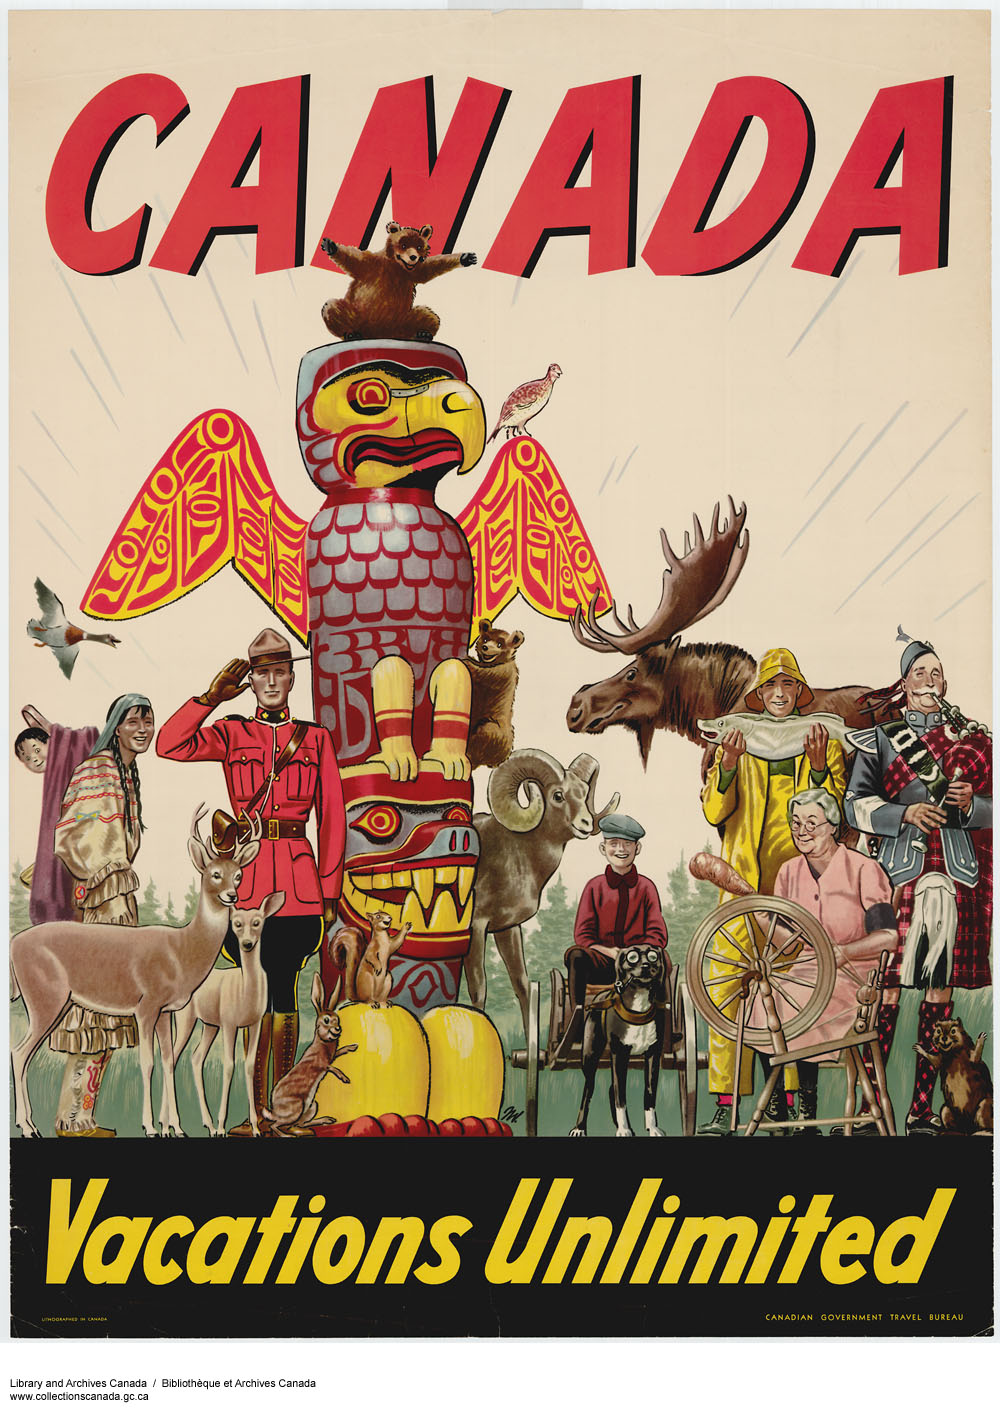 Canadian Government Travel Bureau - 1947